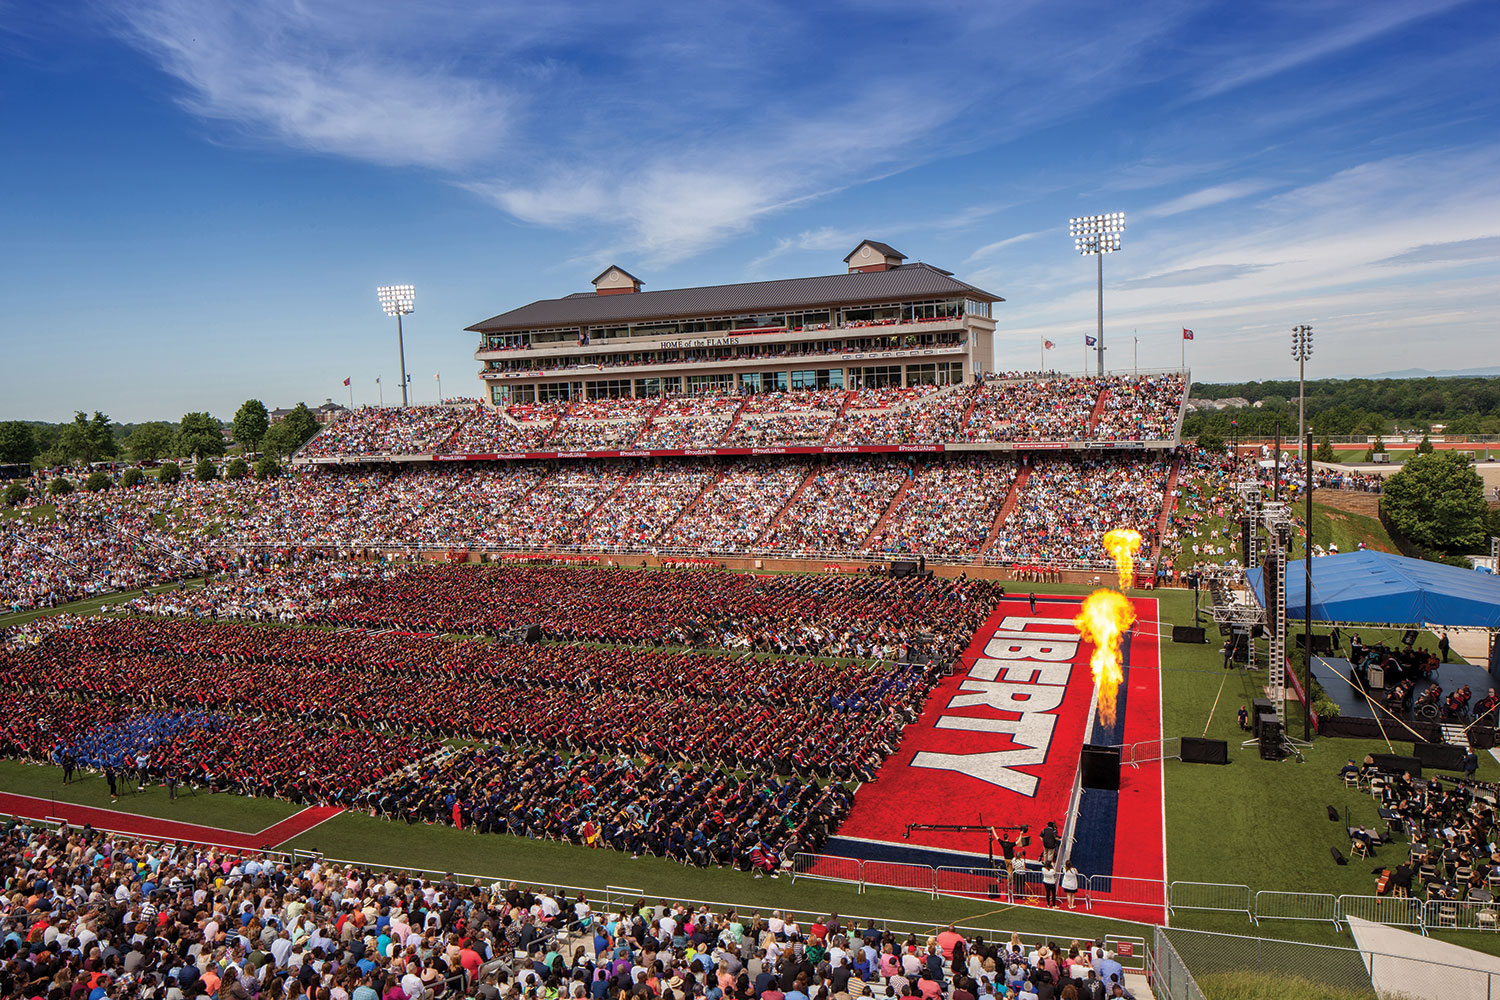 Liberty University celebrated its largest graduating class to date during its 43rd Commencement Ceremony inside Williams Stadium.